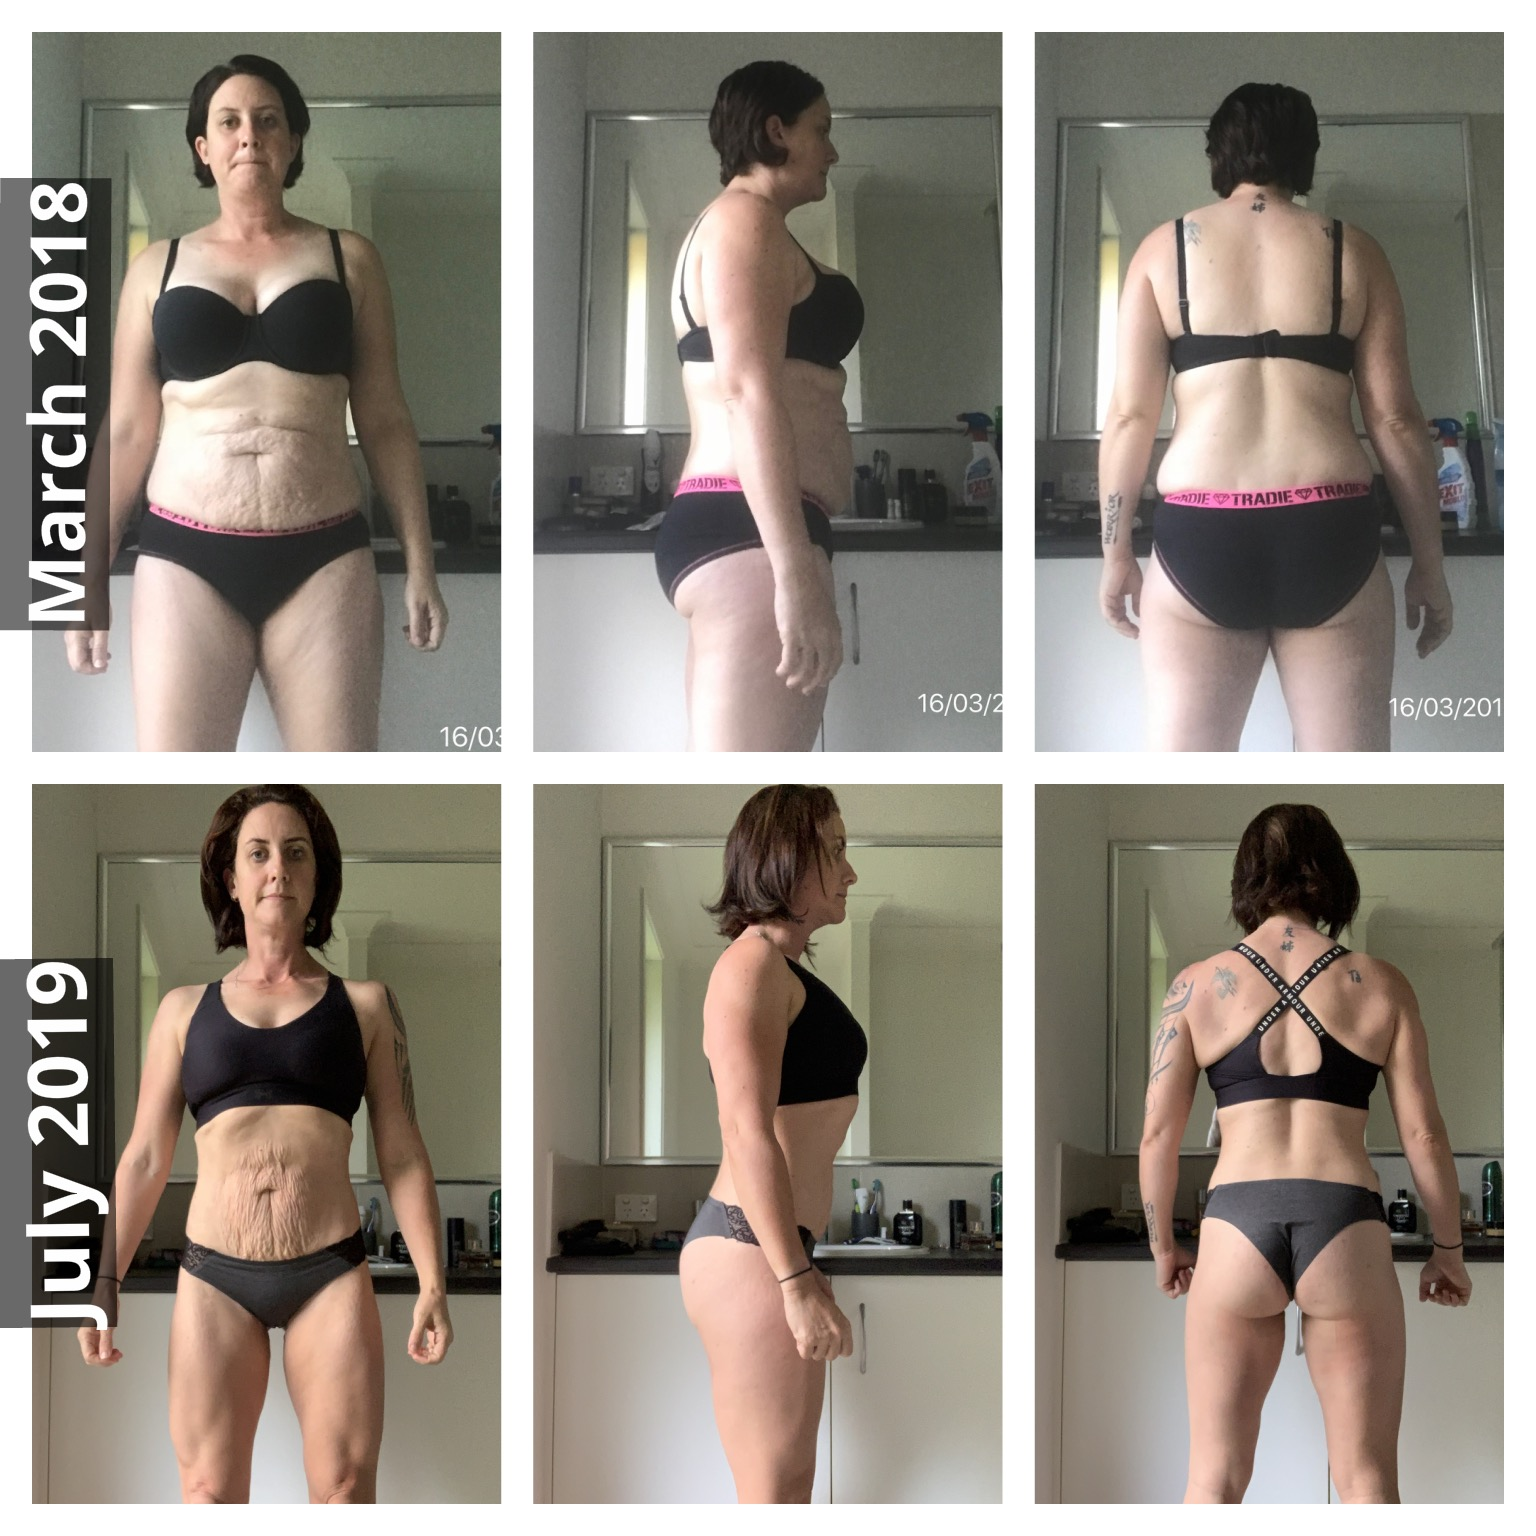 Fat loss Weight Loss Nutritional Coach Personal Trainer Results.JPG